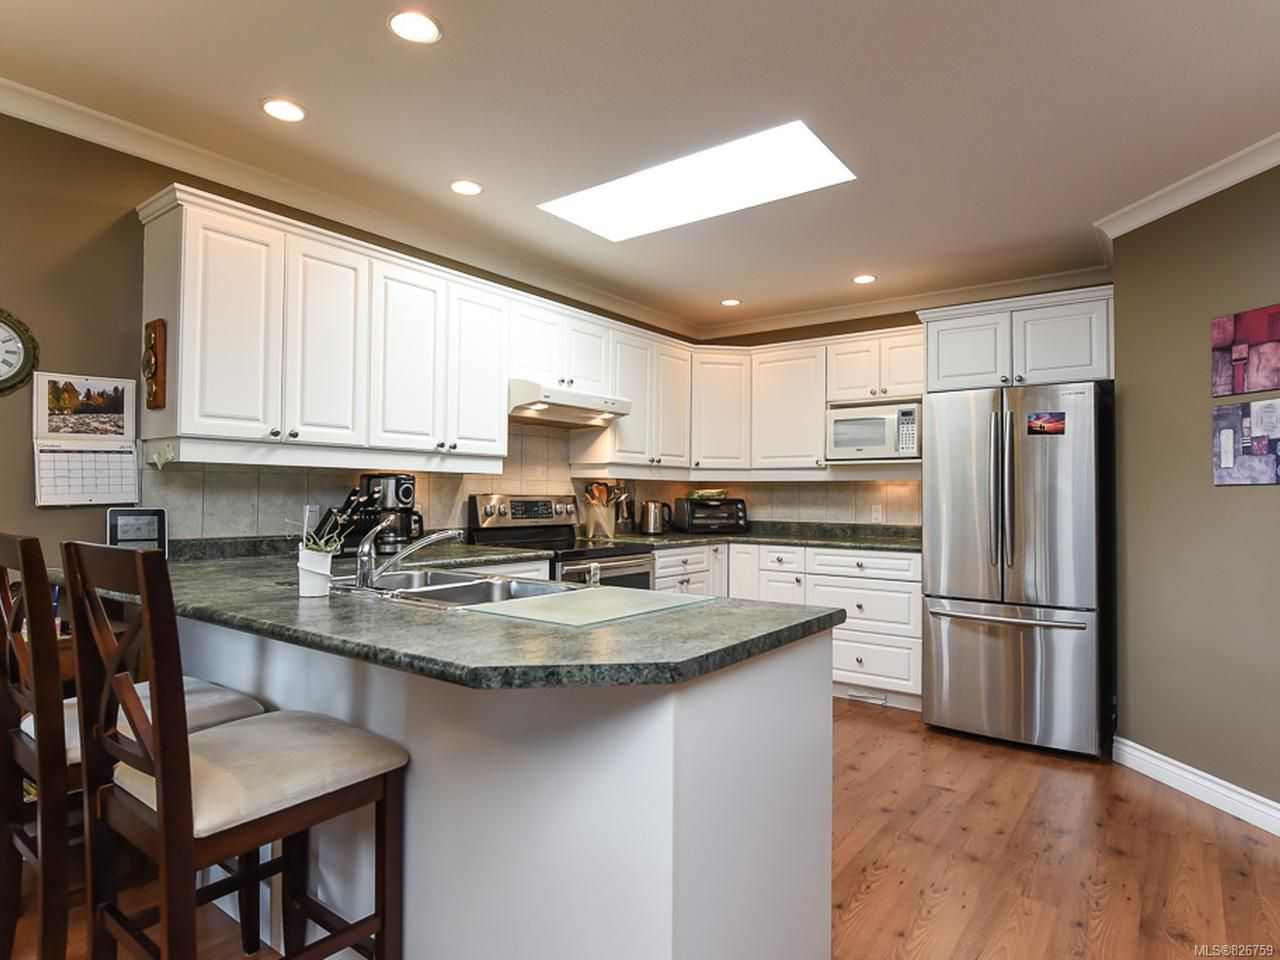 Photo 11: Photos: 2165 Stirling Cres in COURTENAY: CV Courtenay East House for sale (Comox Valley)  : MLS®# 826759